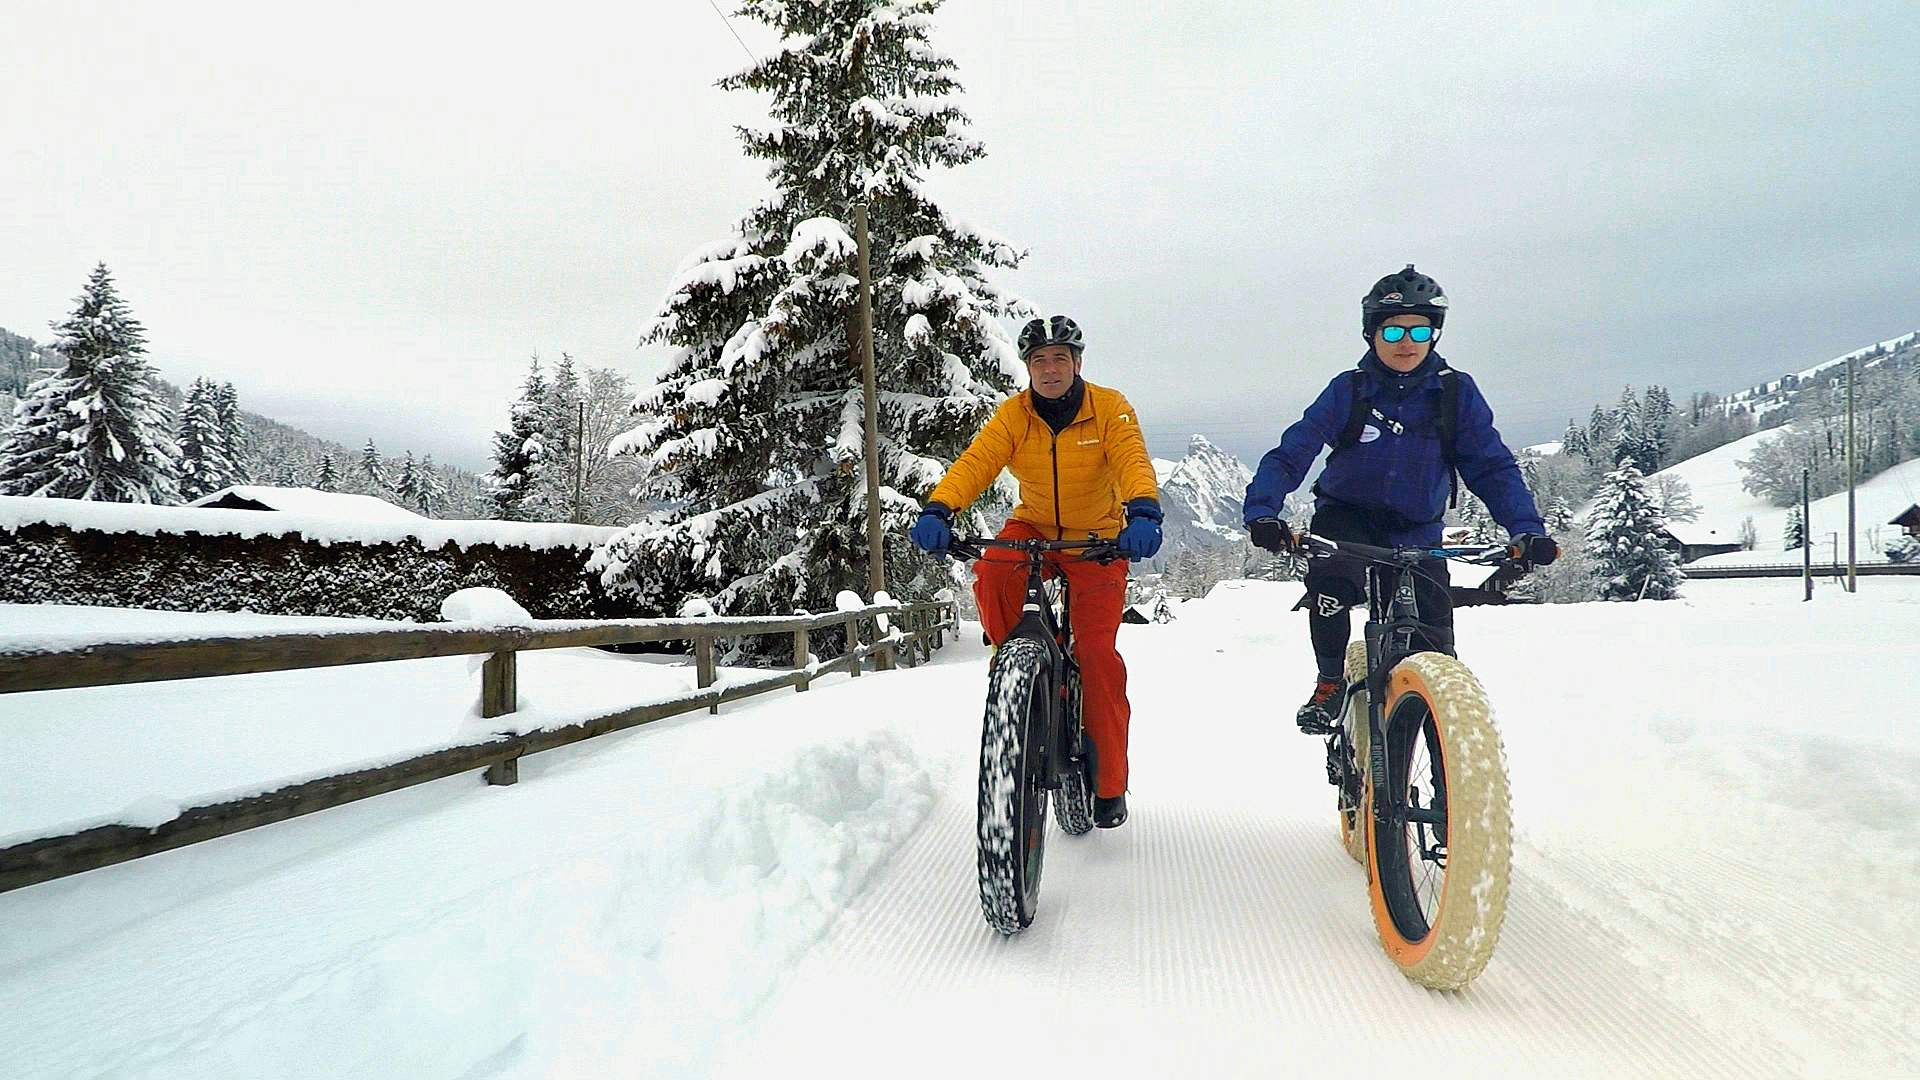 Jeff and fat bike instructor